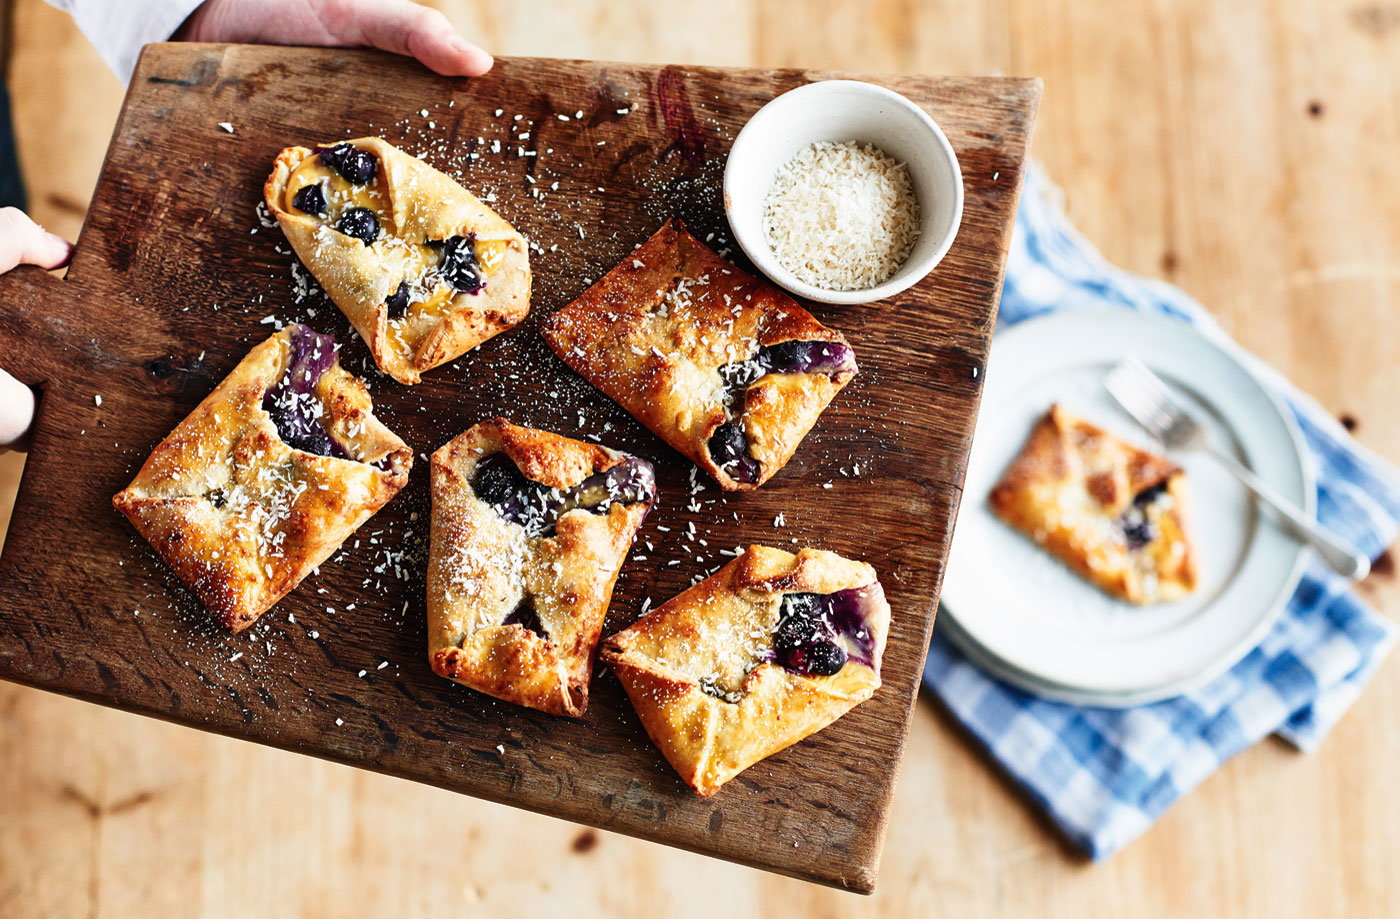 Blueberry and coconut pastries recipe